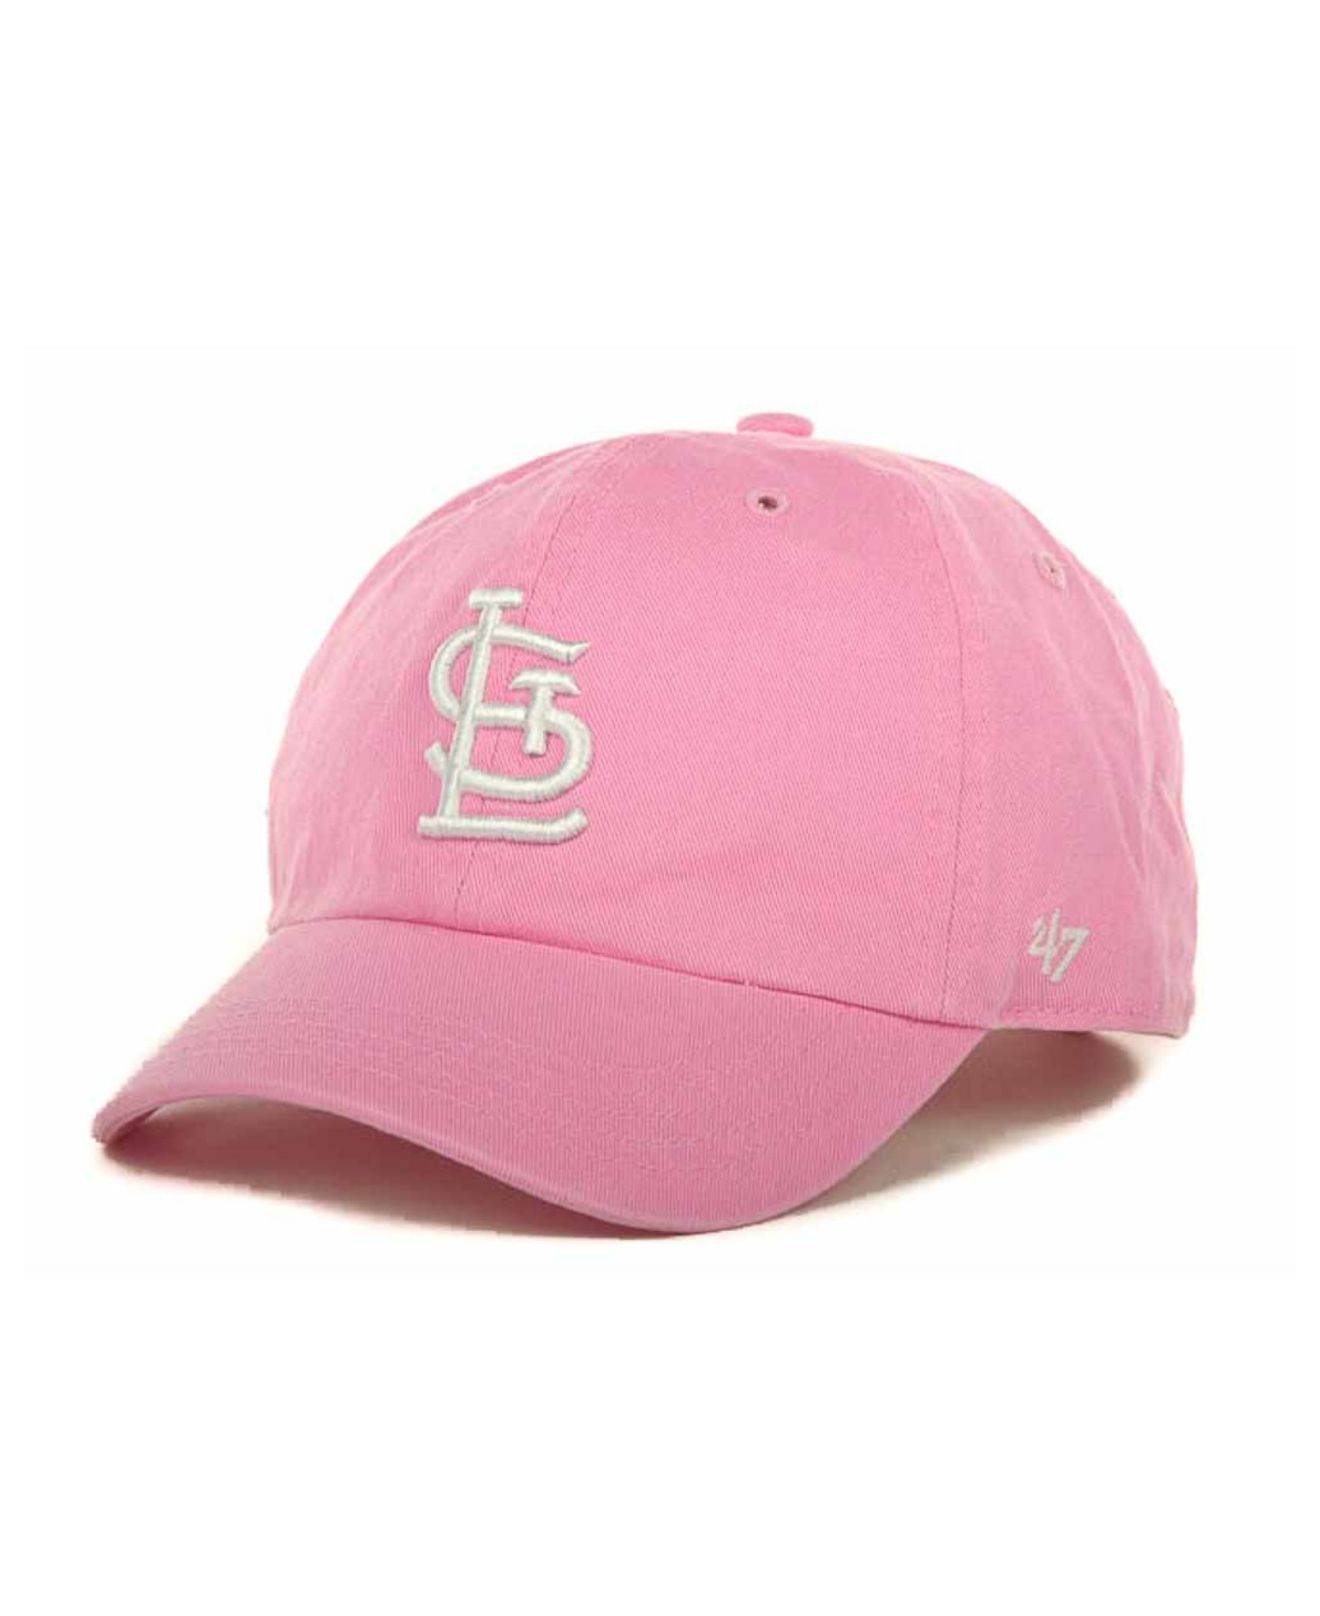 online store 5940e 33879 ... shopping lyst 47 brand kids st. louis cardinals clean up cap in pink  for men